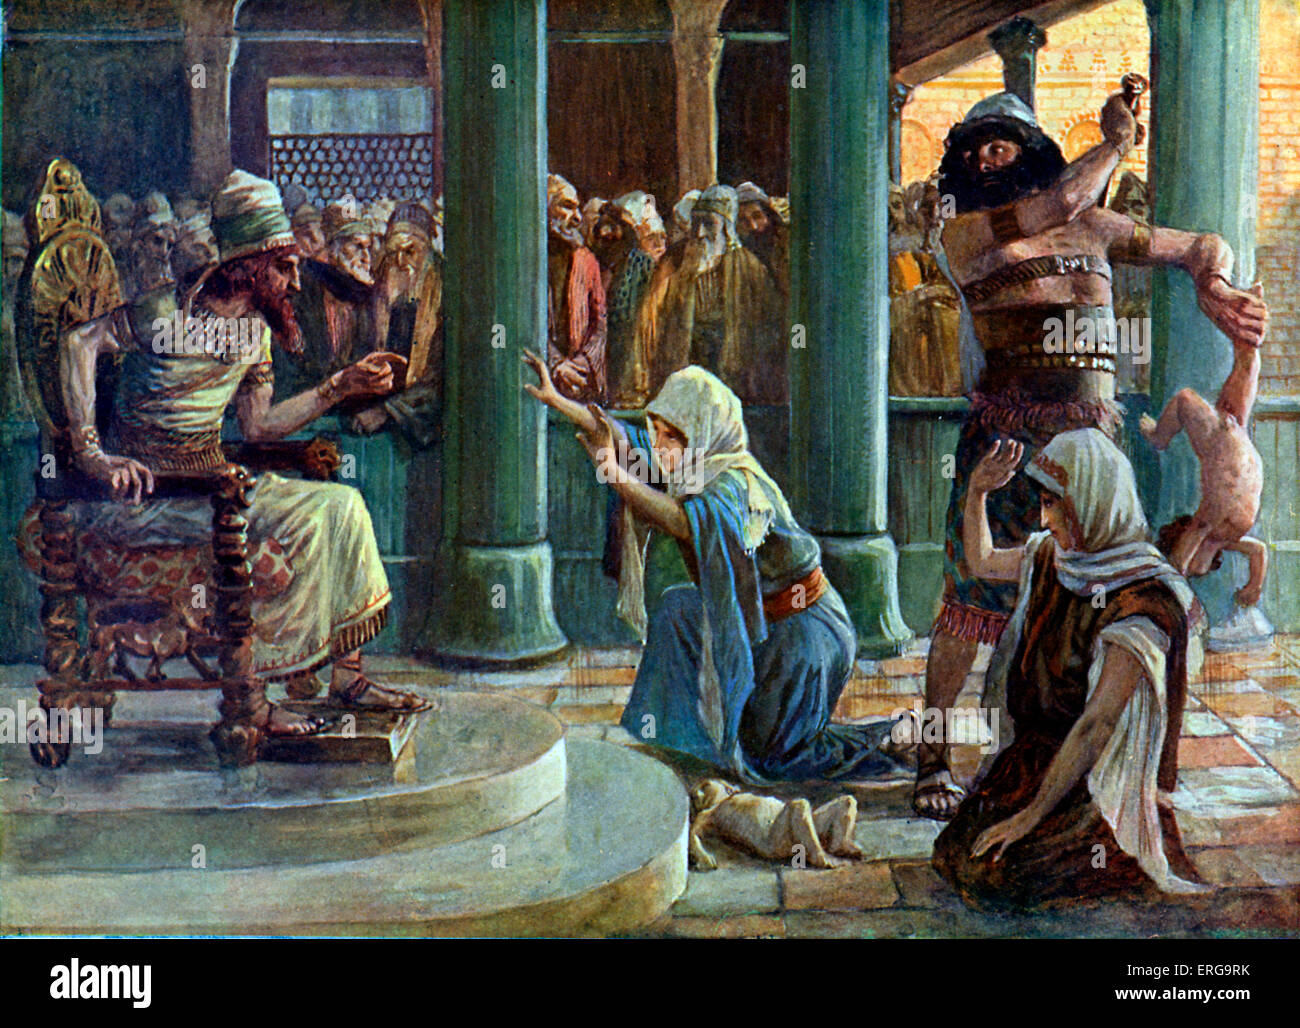 The Wisdom of Solomon by J James Tissot. Illustration of Book of Kings I, 3.27 : 'Then the king answered and said, Stock Photo